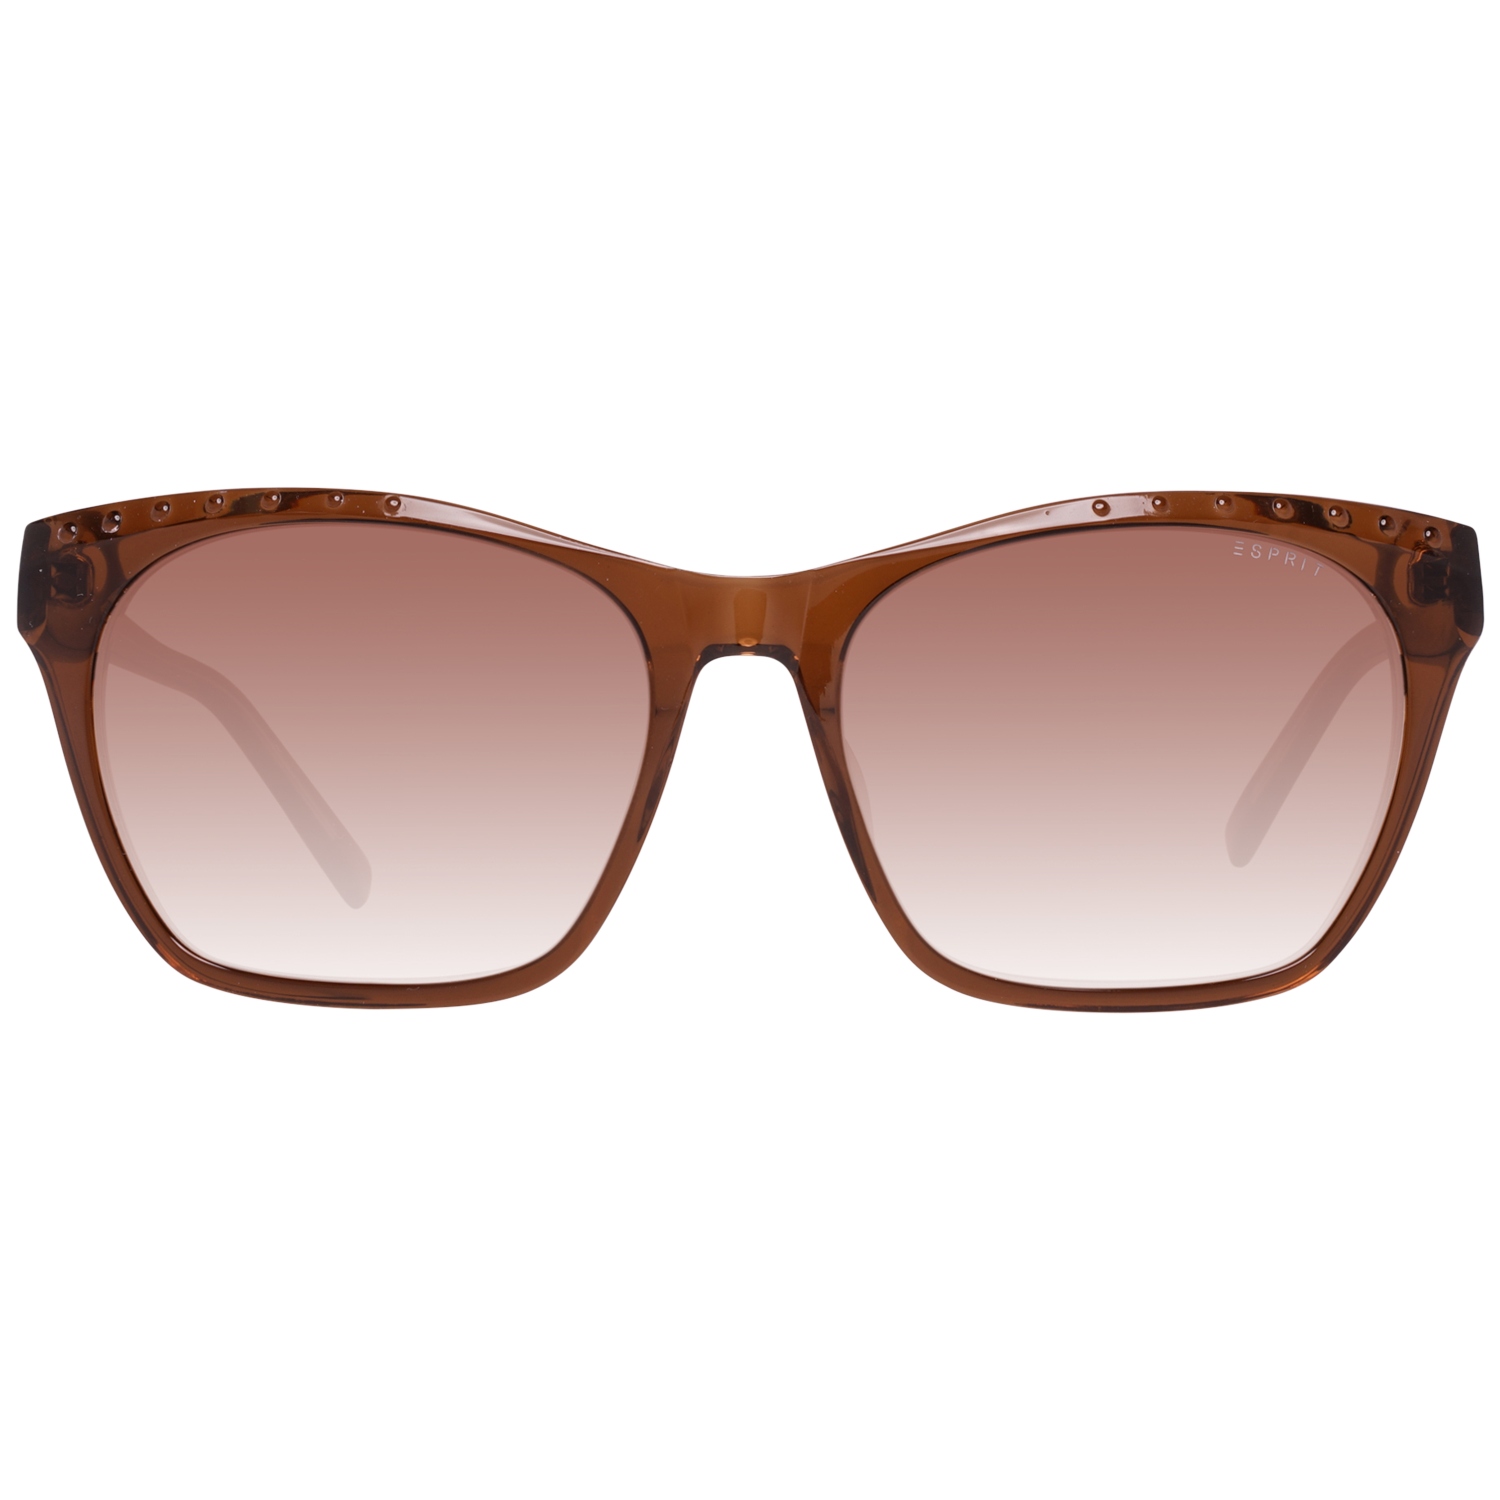 Esprit Sunglasses ET17873 535 56 Women Brown